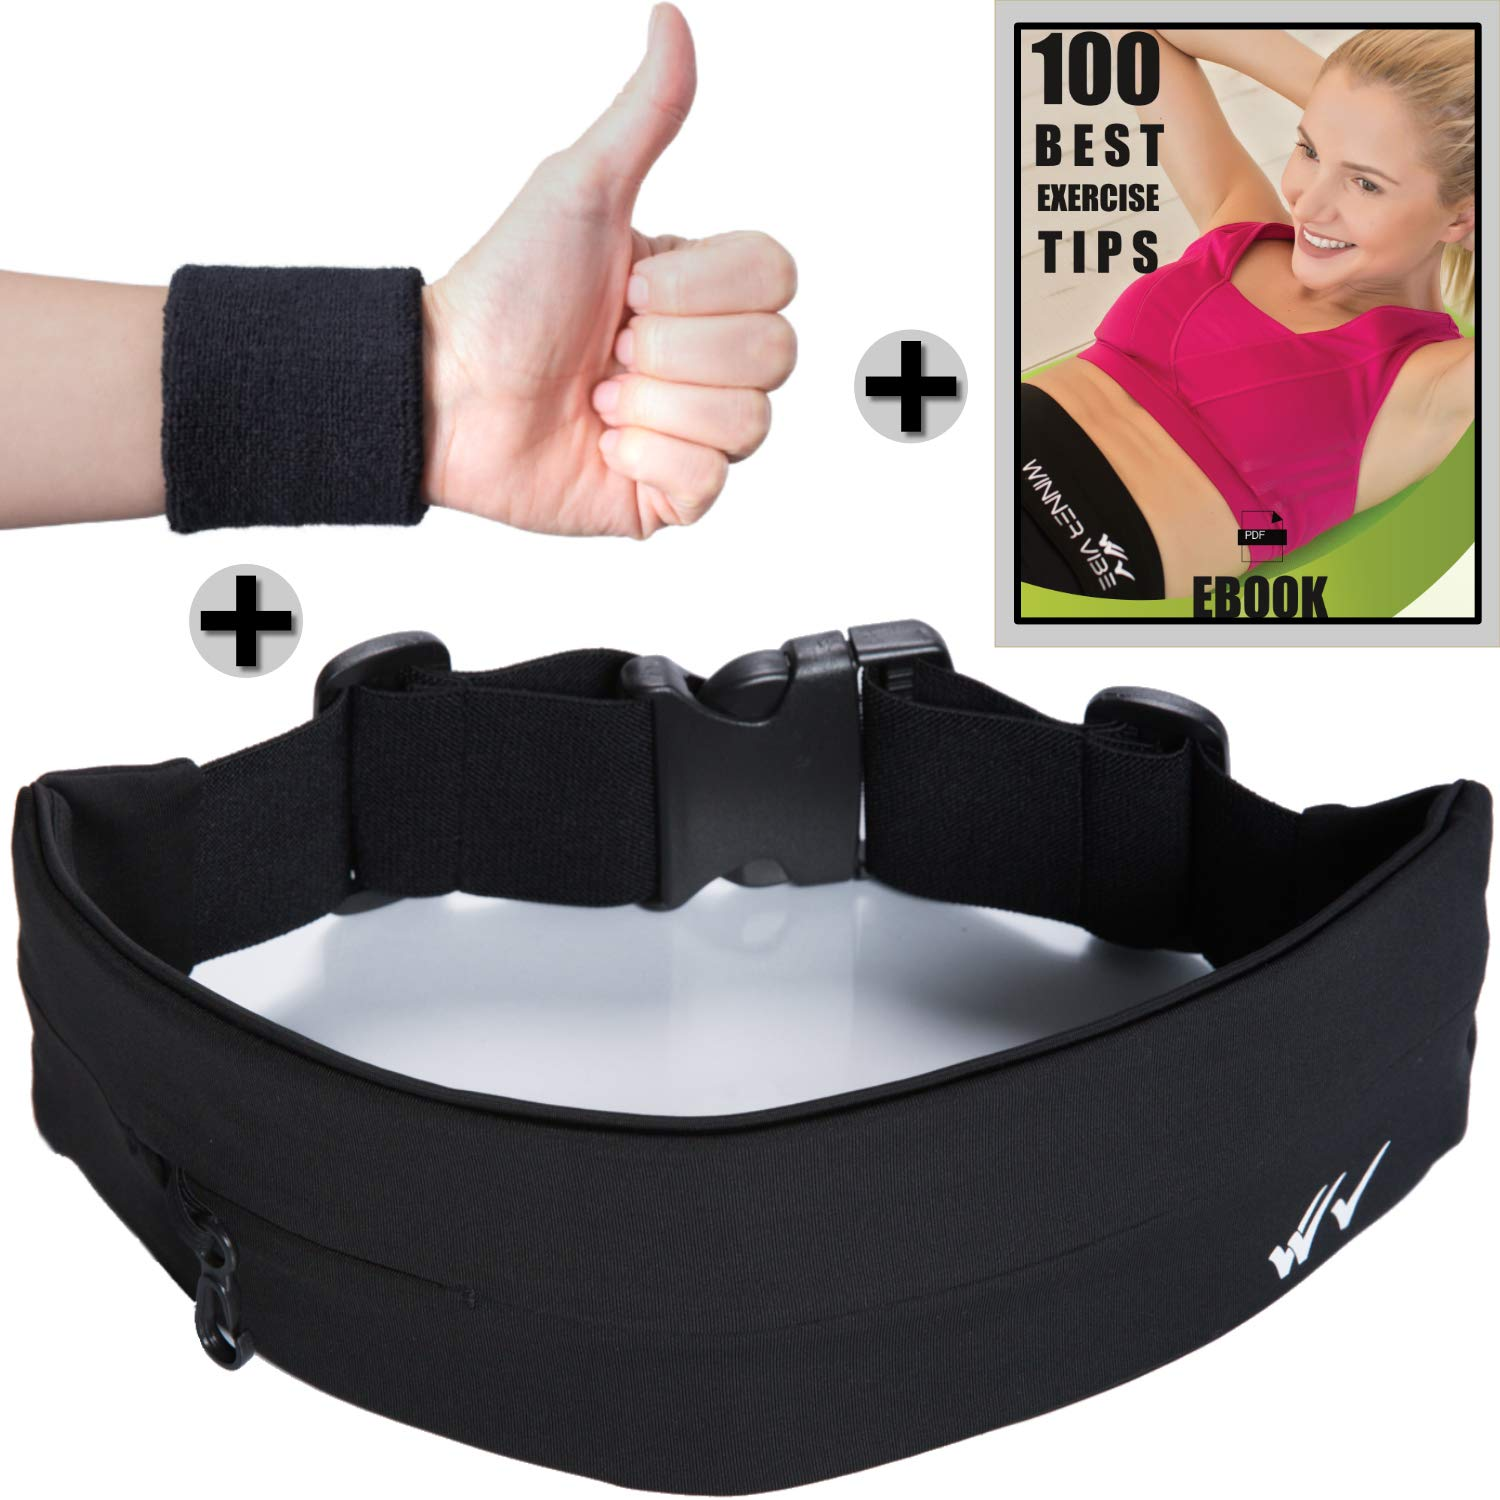 Winner Vibe Running Belt with Extra Large Pocket to fit iPhone X, 8 Plus, Samsung 8 Plus Fitness, Jogging Belt for a Hands Free Workout Elastic Unisex Waist Pack with Phone Holder